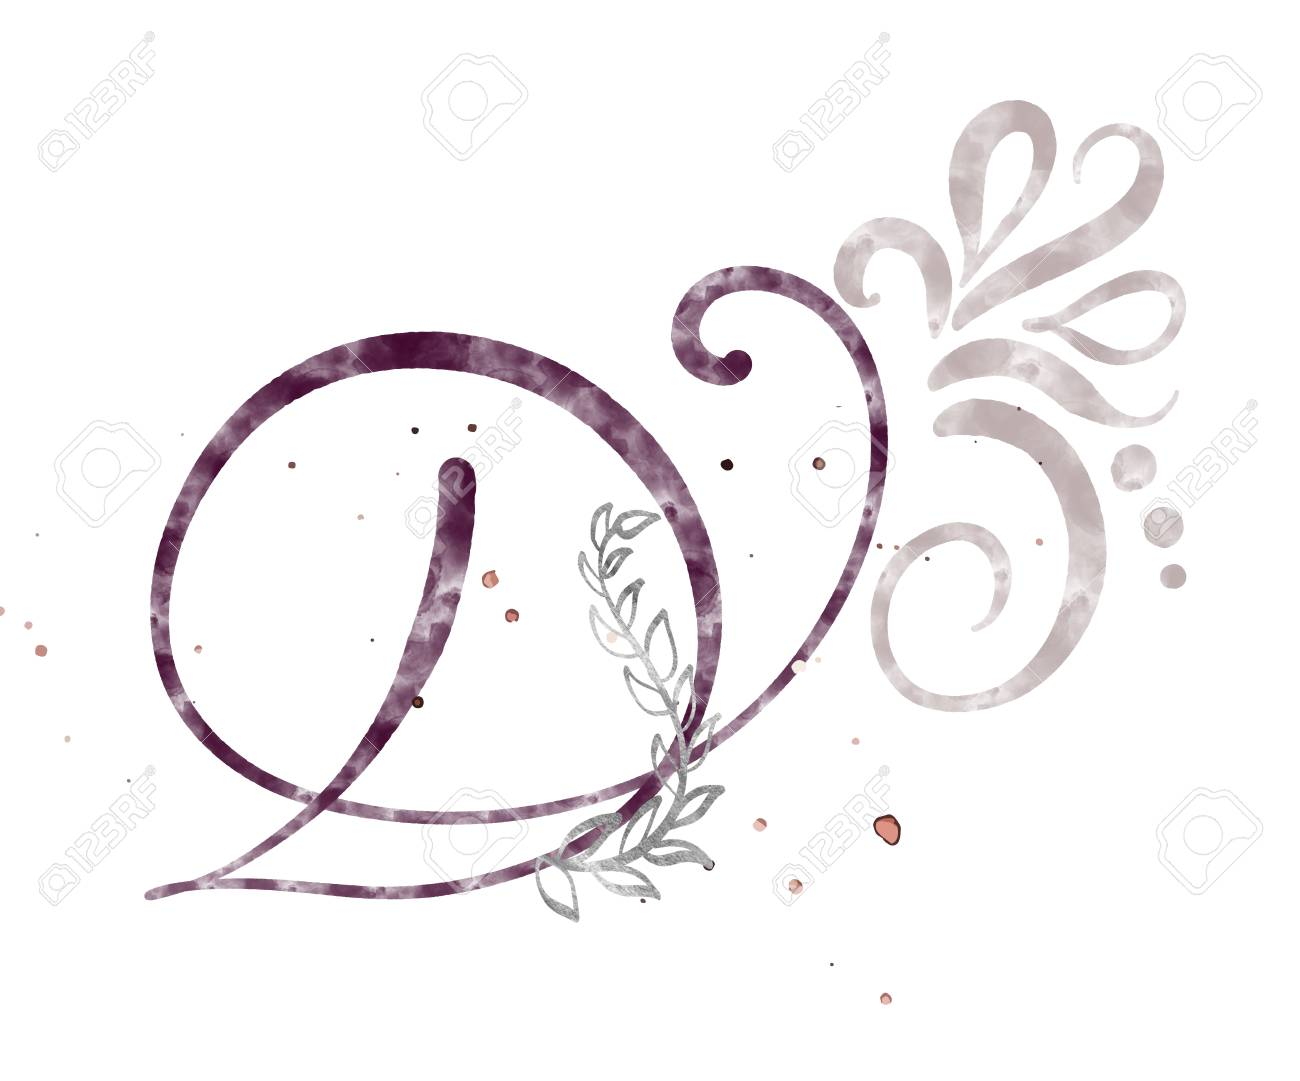 Hand Drawn Calligraphy Letter D Watercolor Script Font Isolated Letters Written With Ink